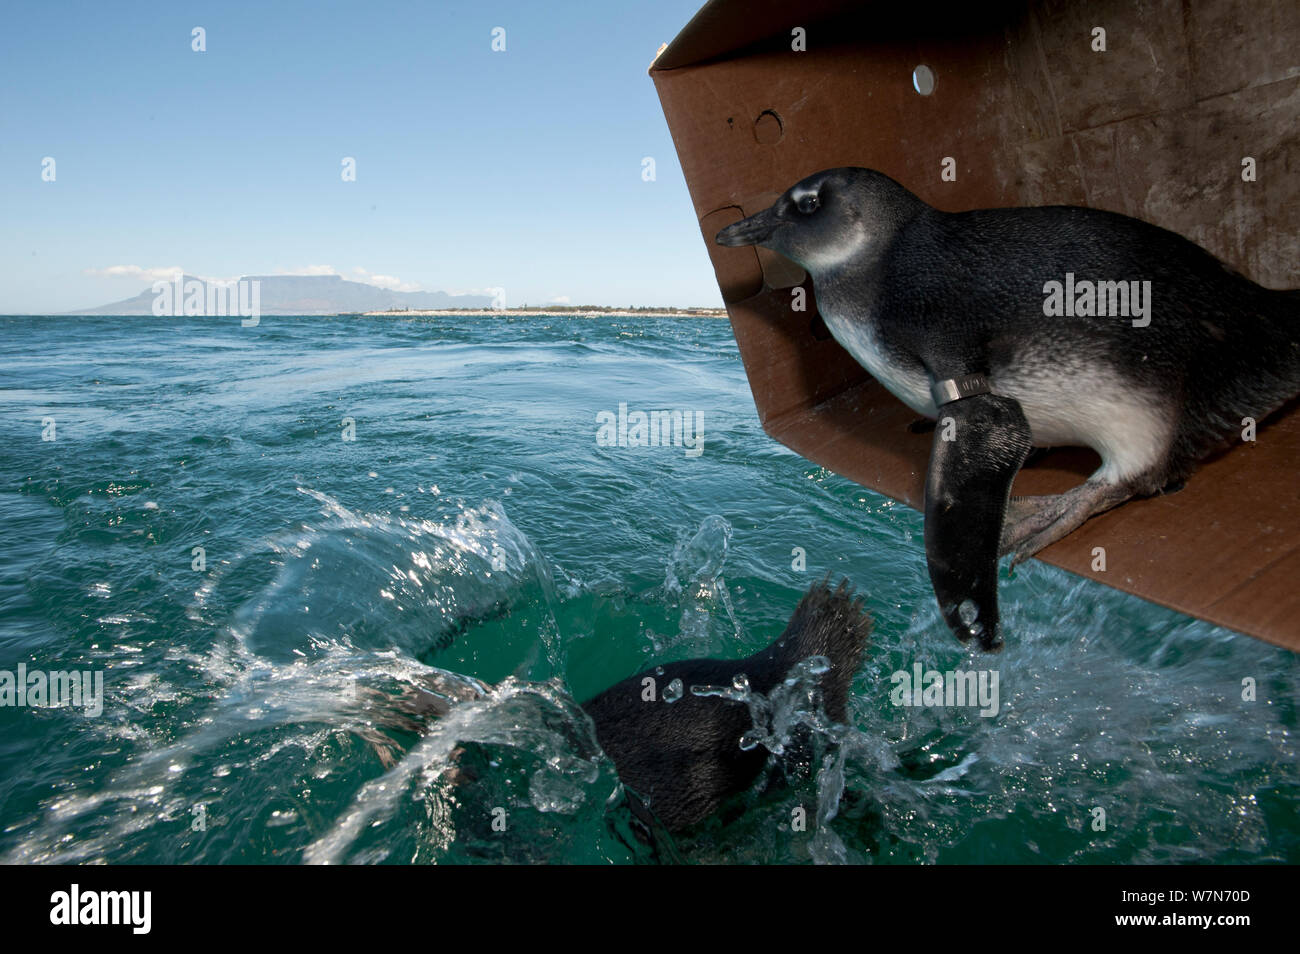 Black footed penguins (Spheniscus demersus) being released at sea near Robben Island in Table Bay after rehabilitation at Southern African Foundation for the Conservation of Coastal Birds (SANCCOB) Cape Town, South Africa Stock Photo